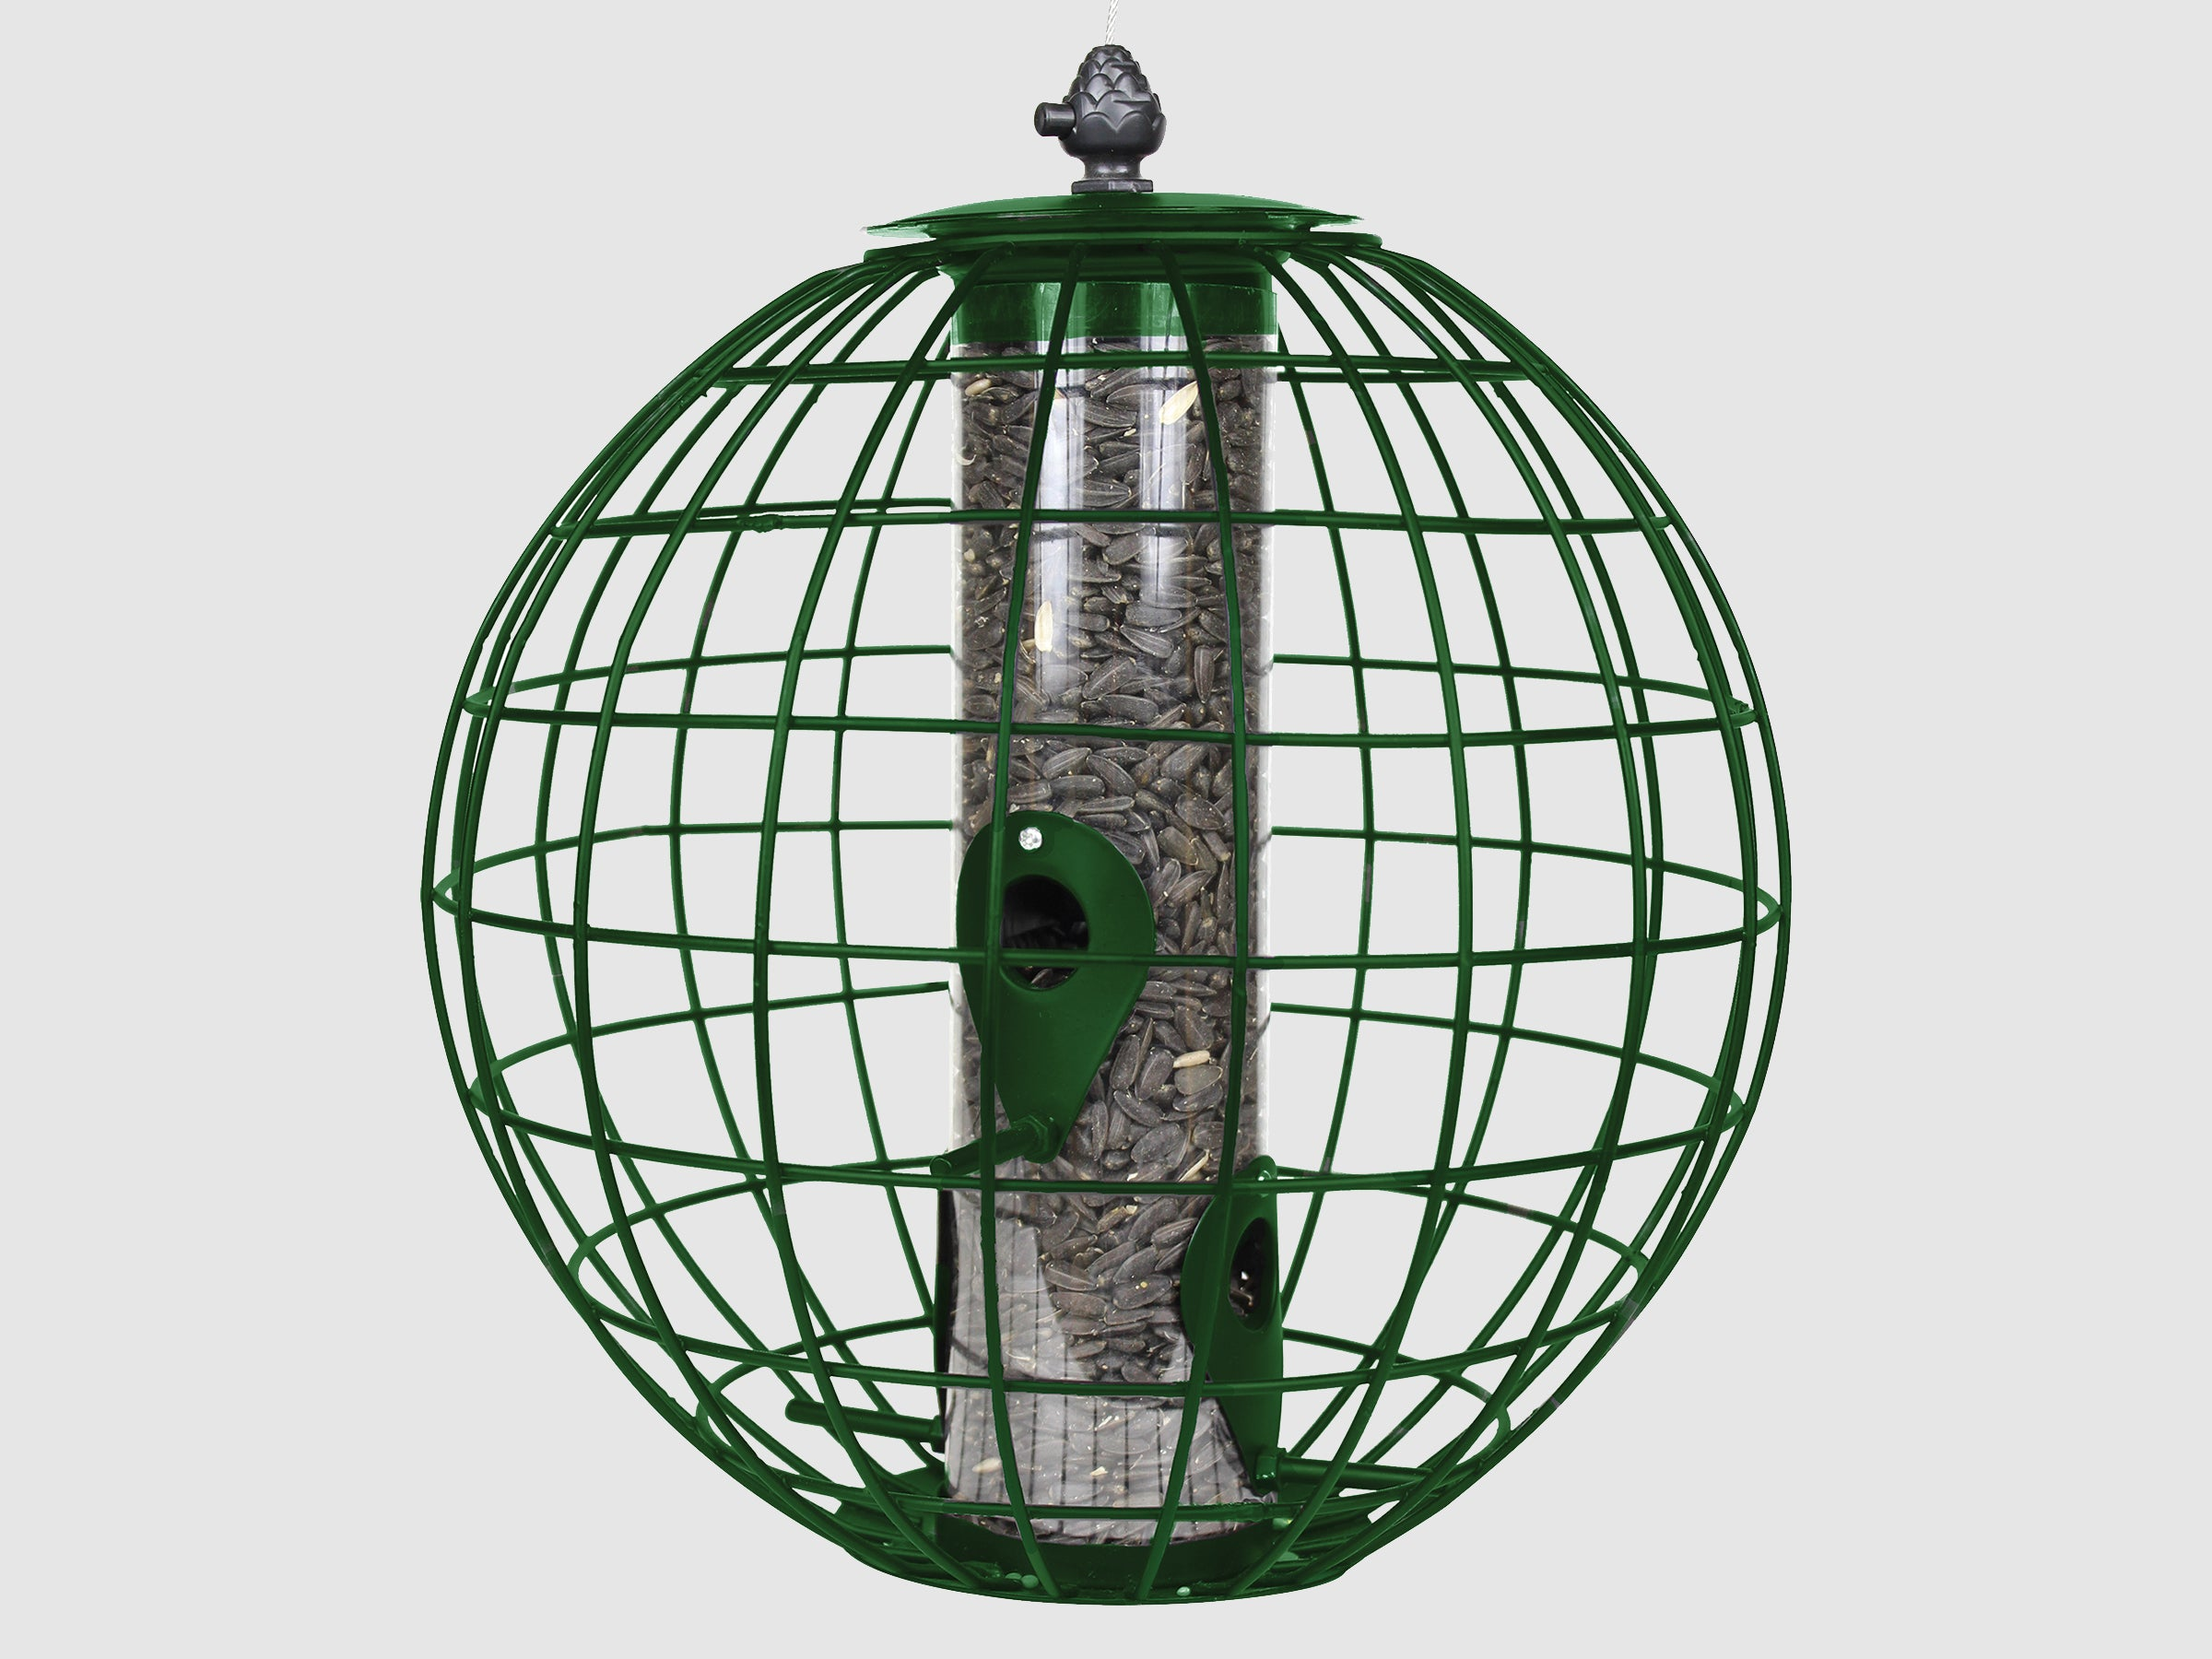 Squirrel resistant cage bird feeder